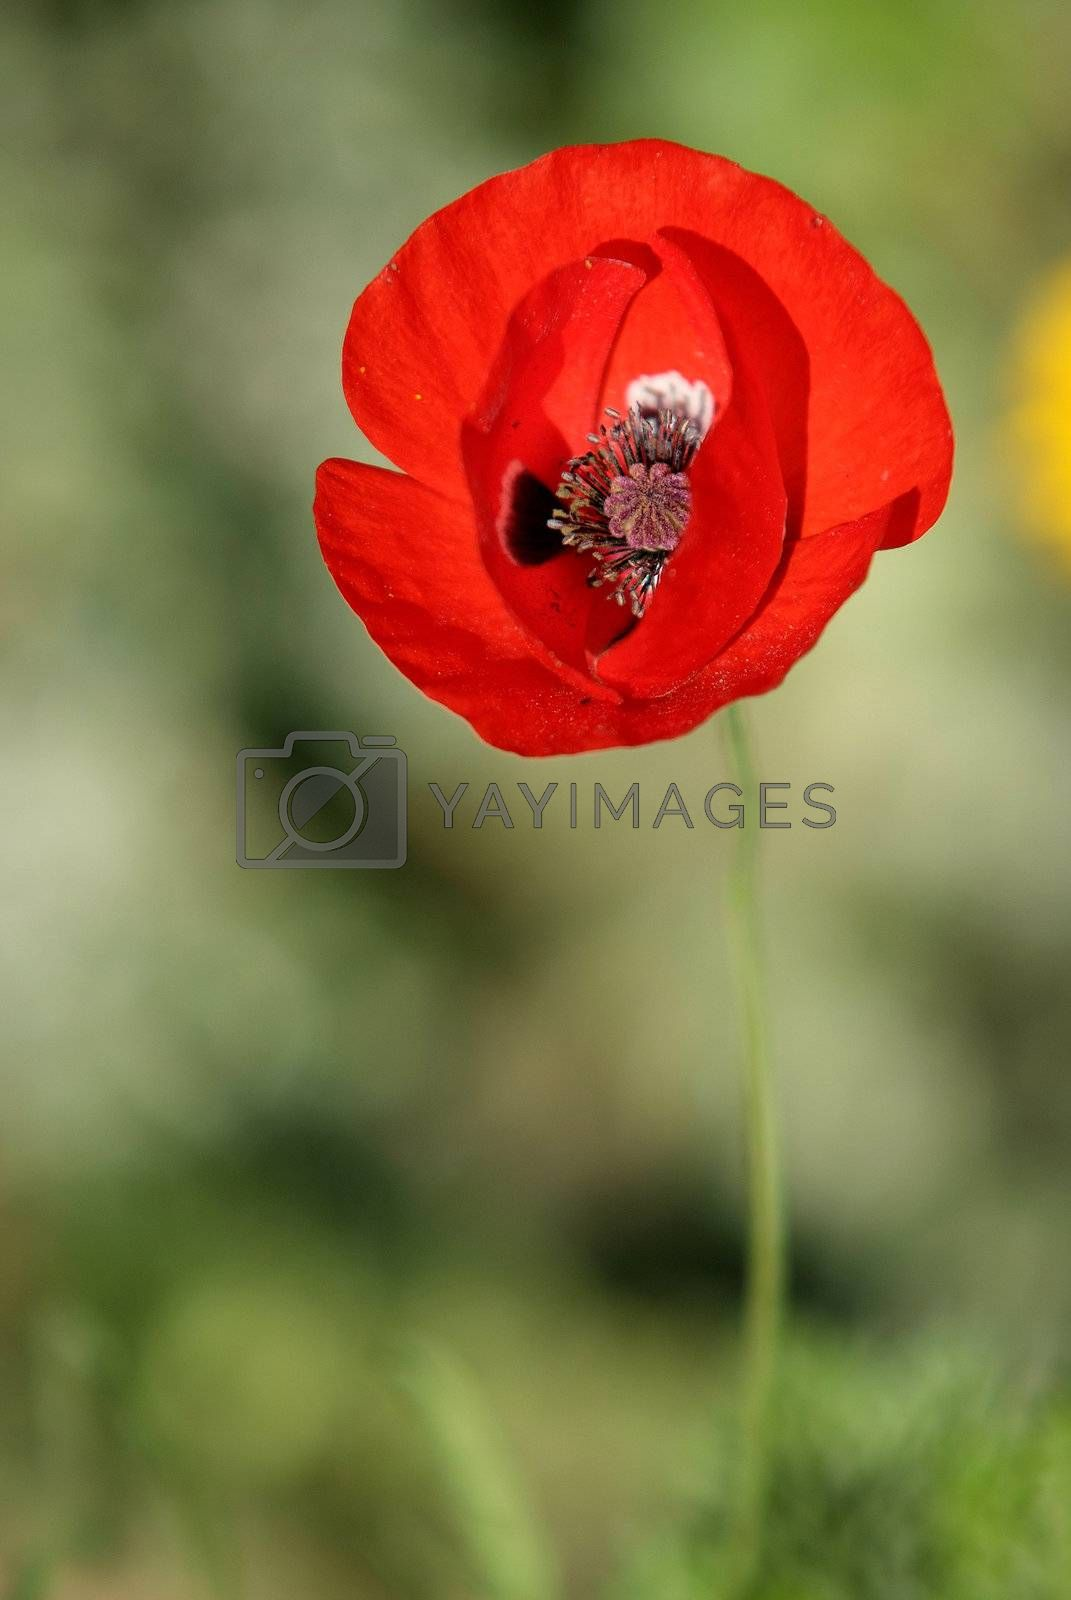 red poppy minimalist background